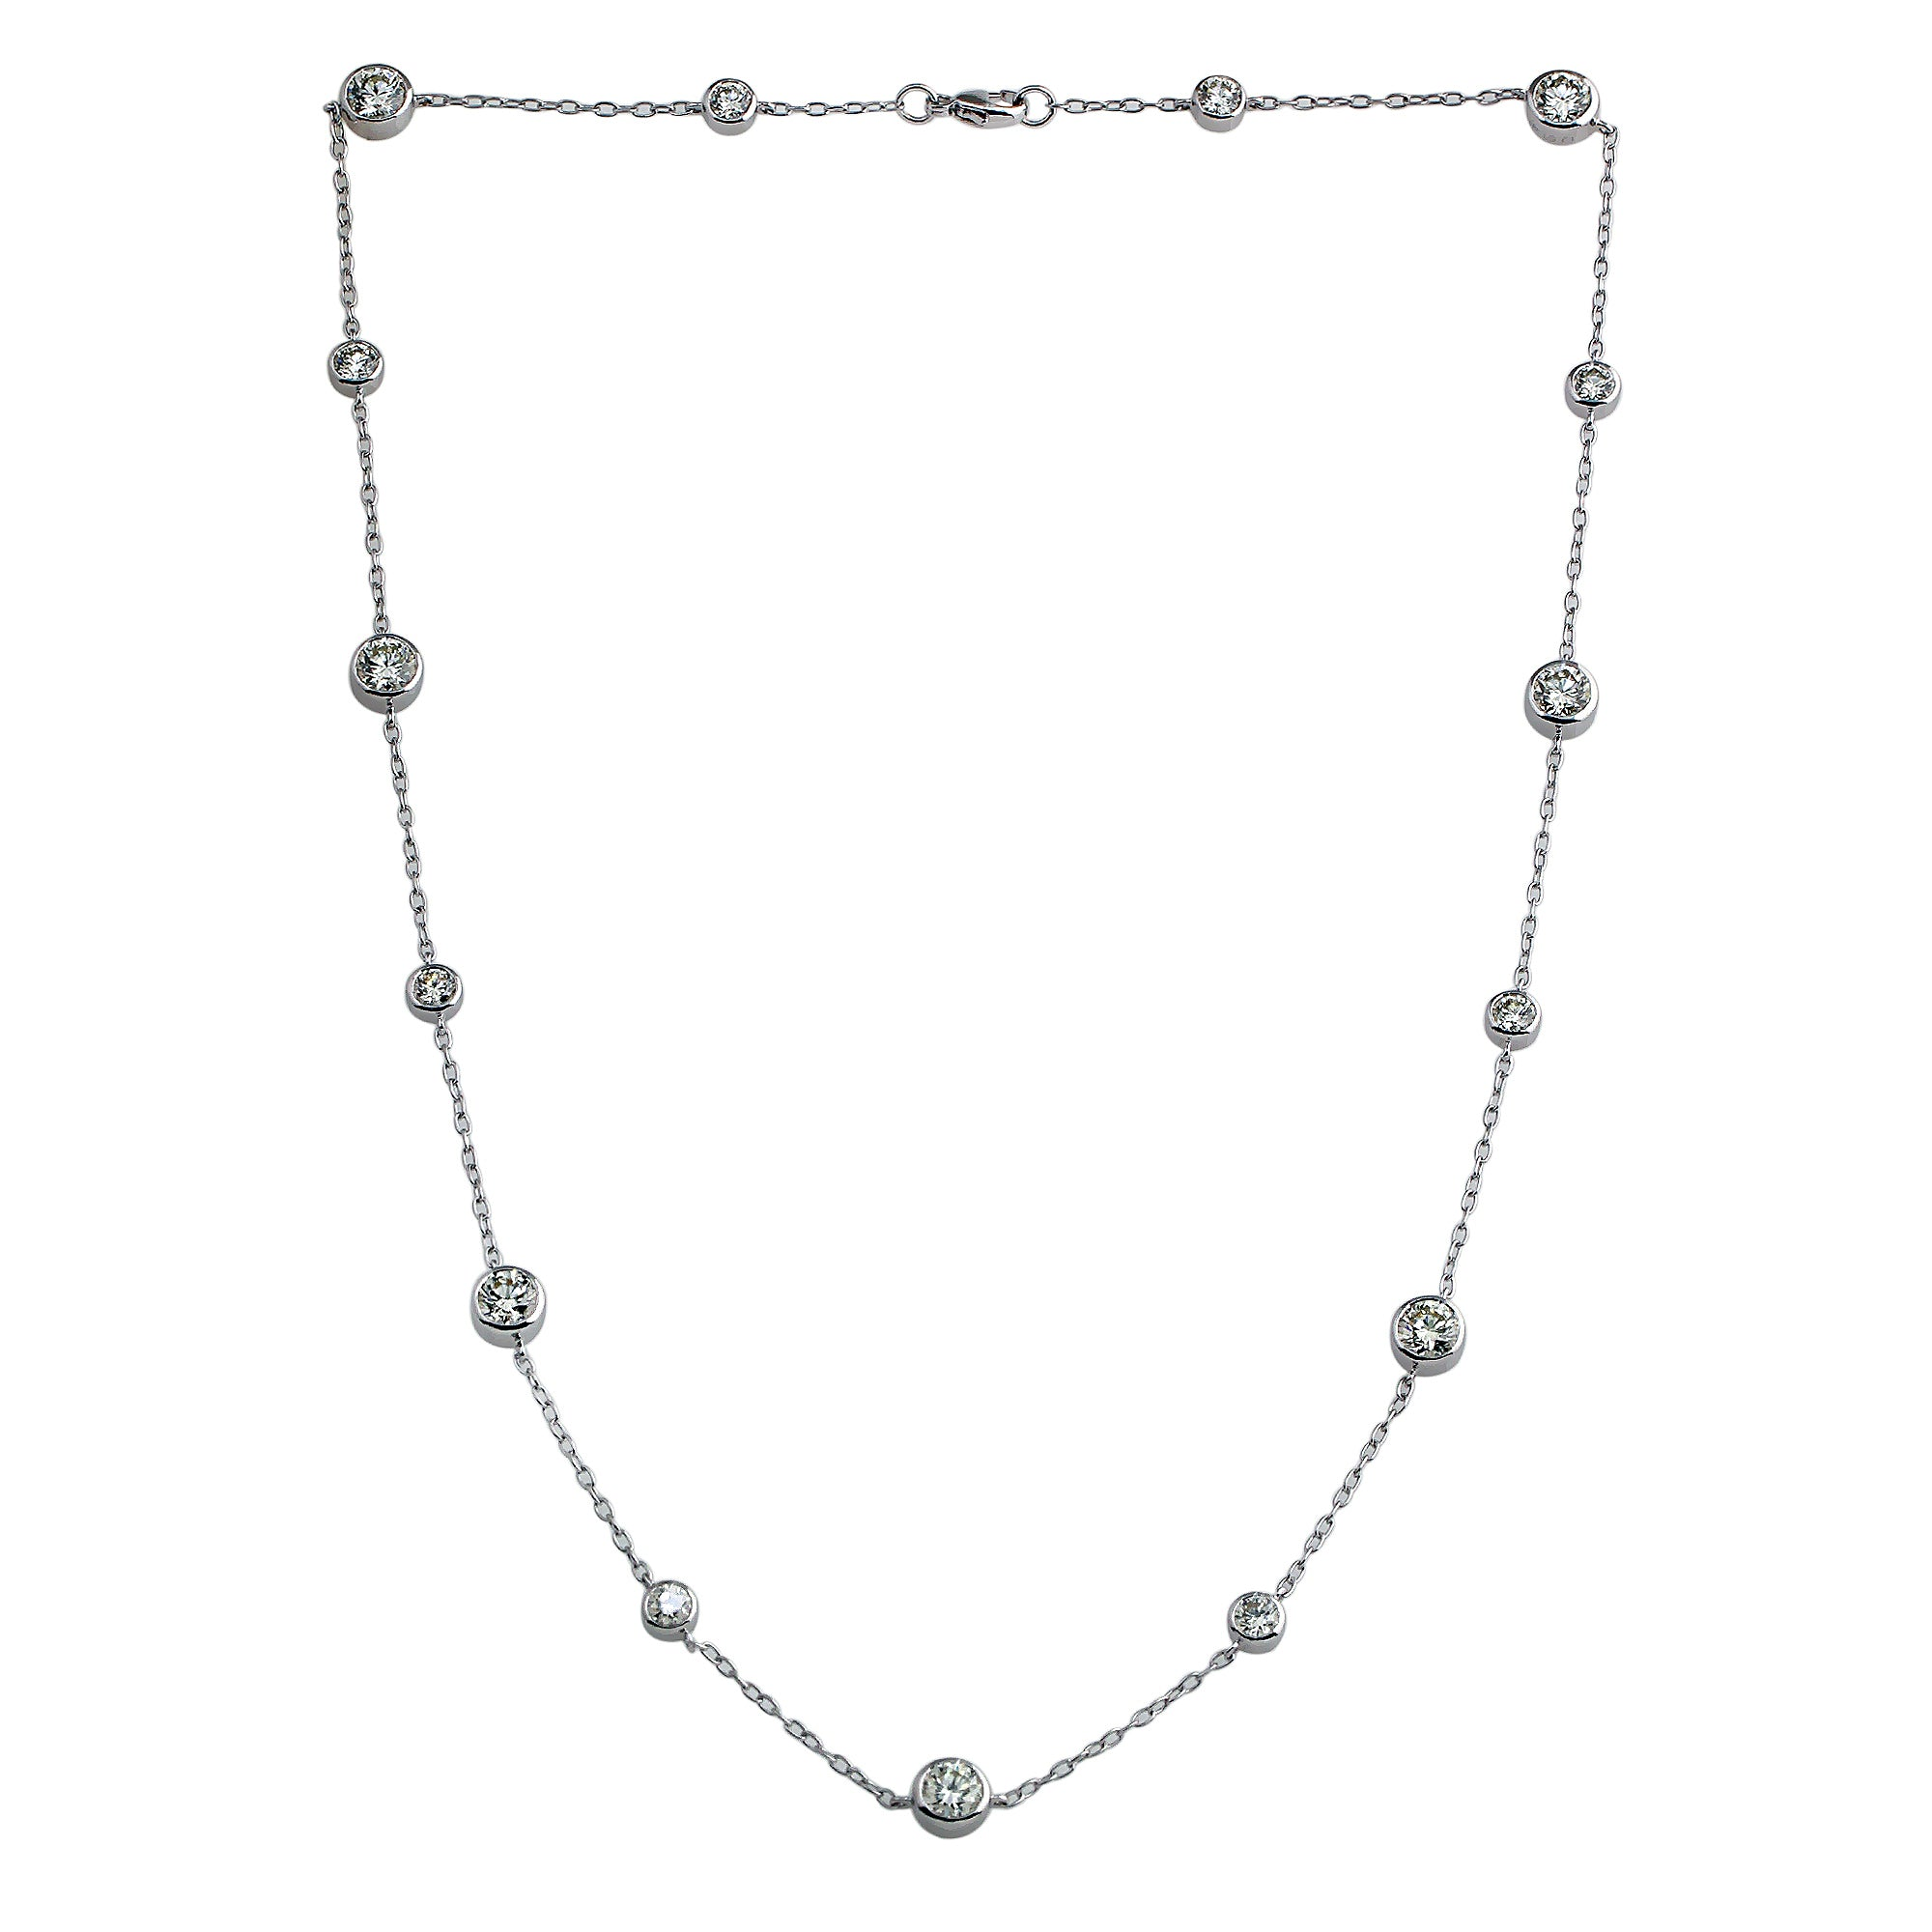 18K White Gold, 5.10CTTW Lab-Grown Diamonds by the Yard Station Necklace